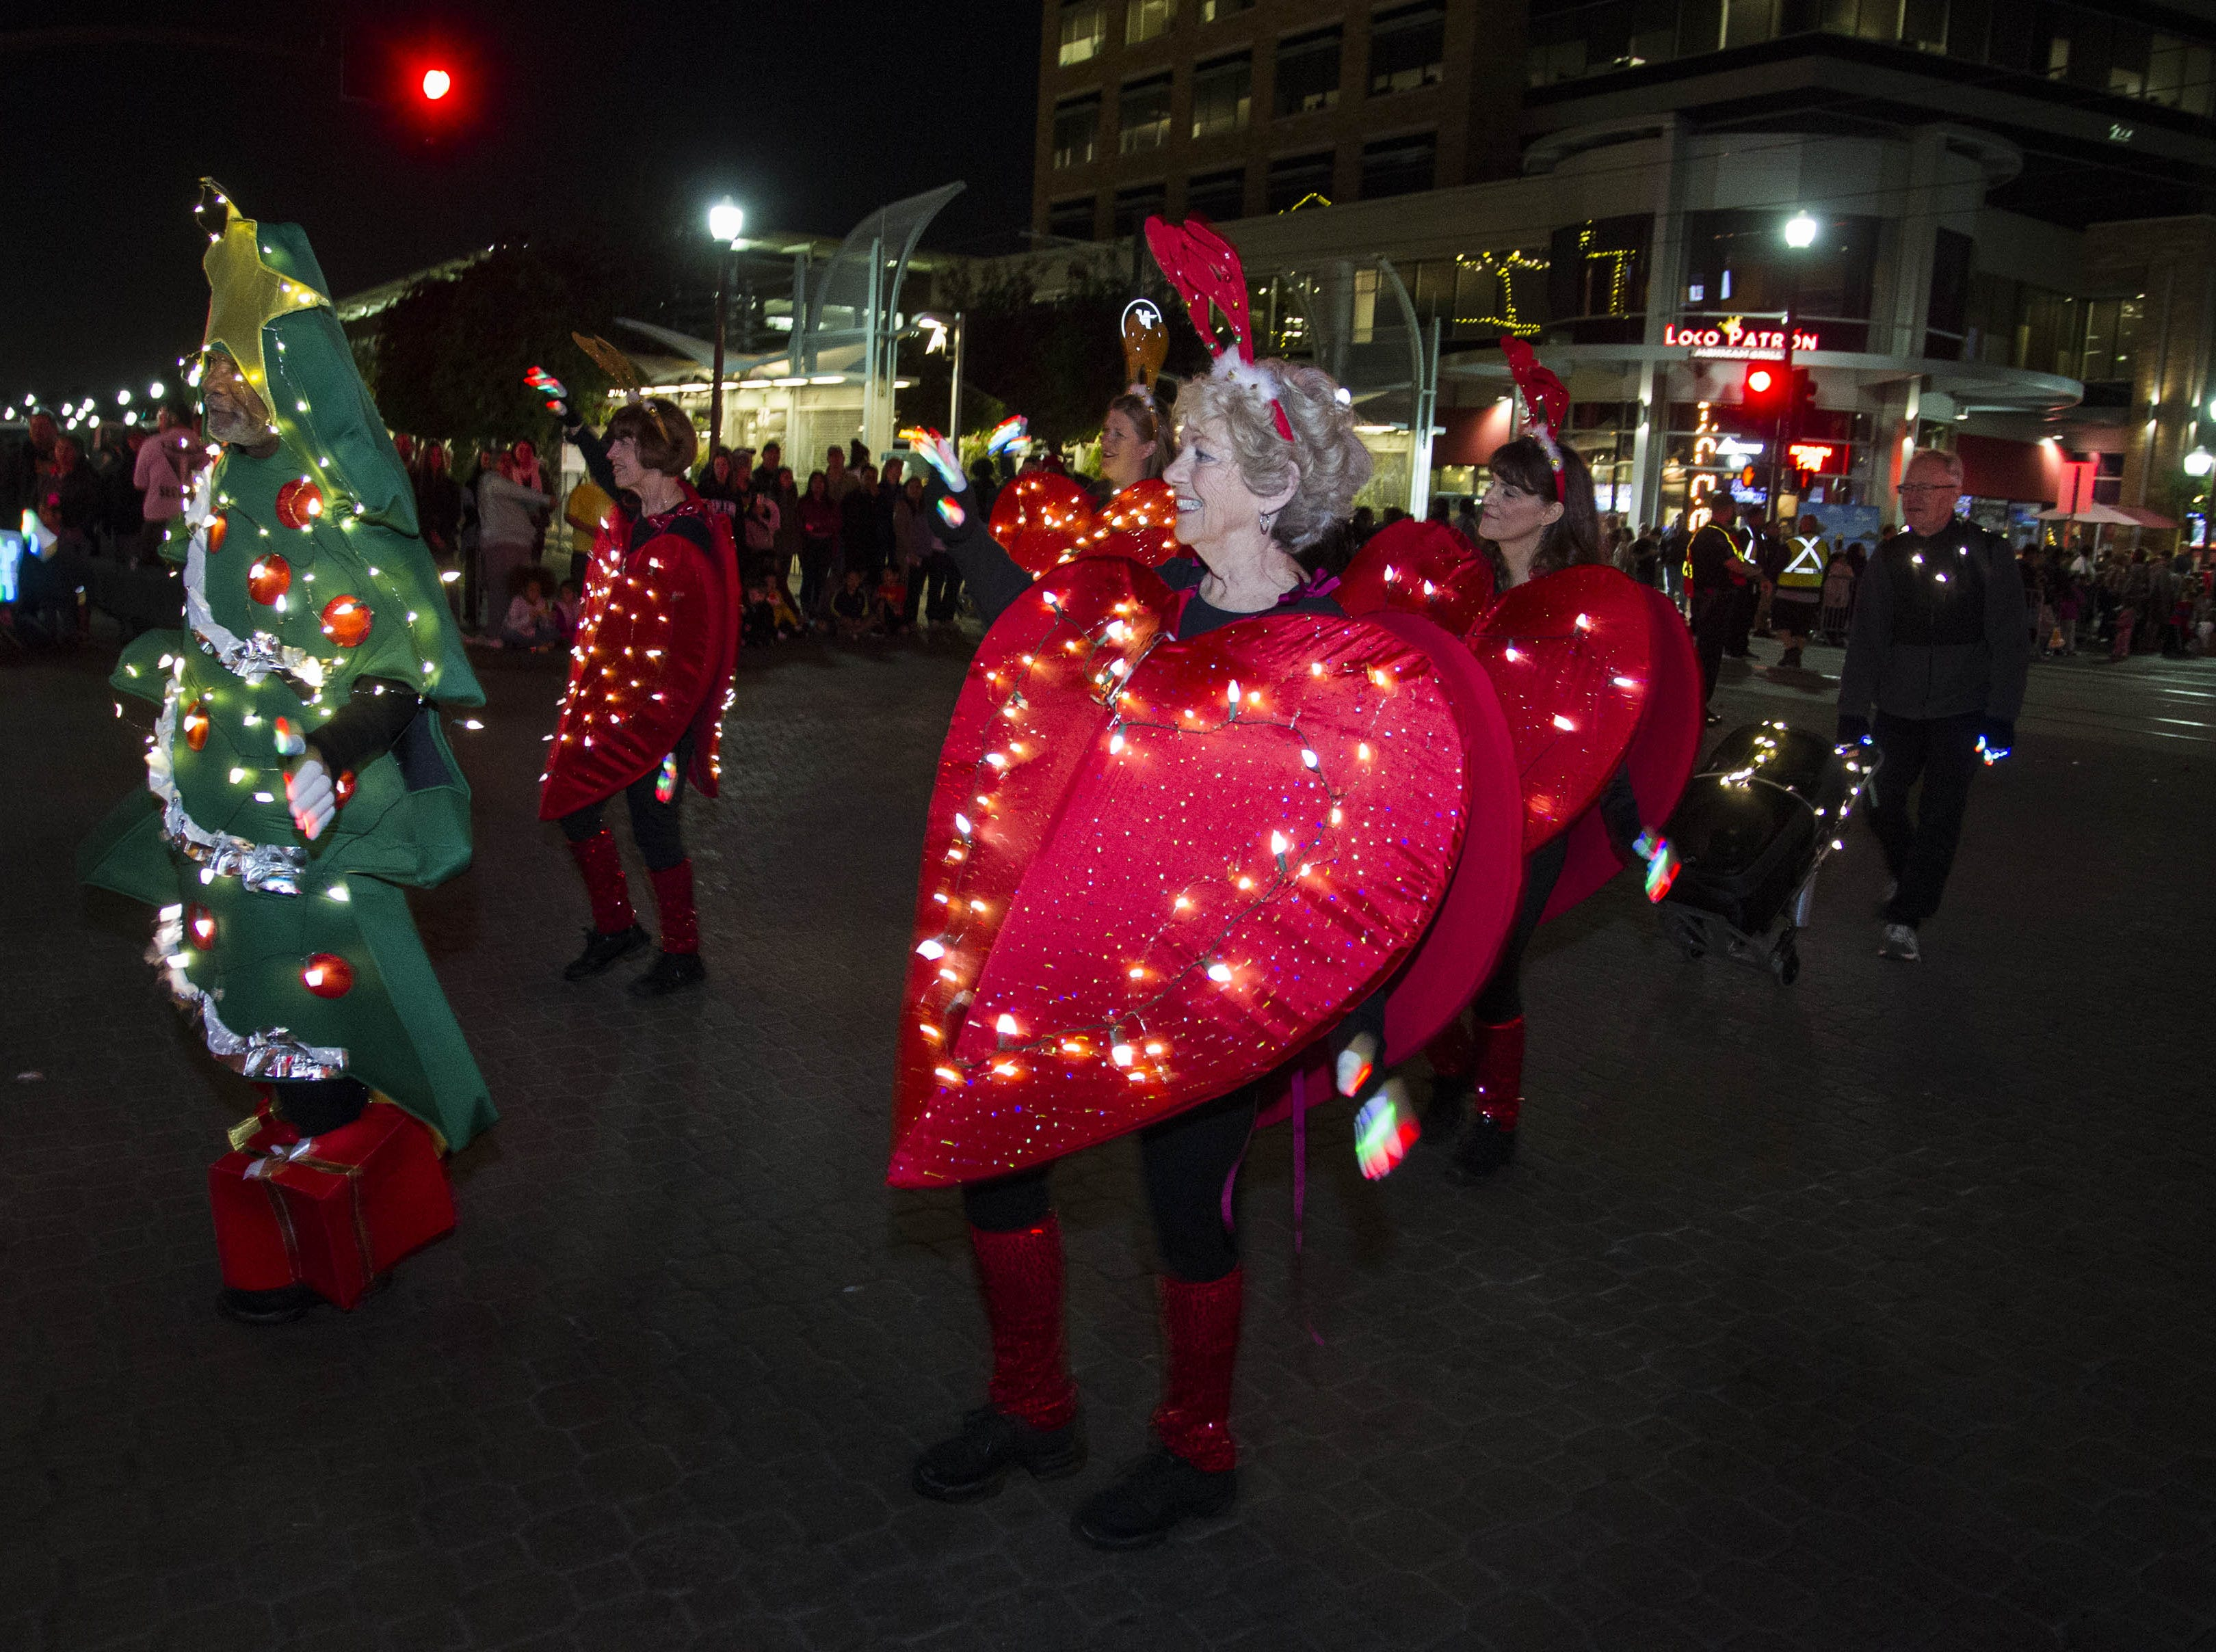 Parade participants entertain the crowd during the 2018 Fantasy of Lights Parade on Mill Avenue, Friday, Nov. 23, 2018.